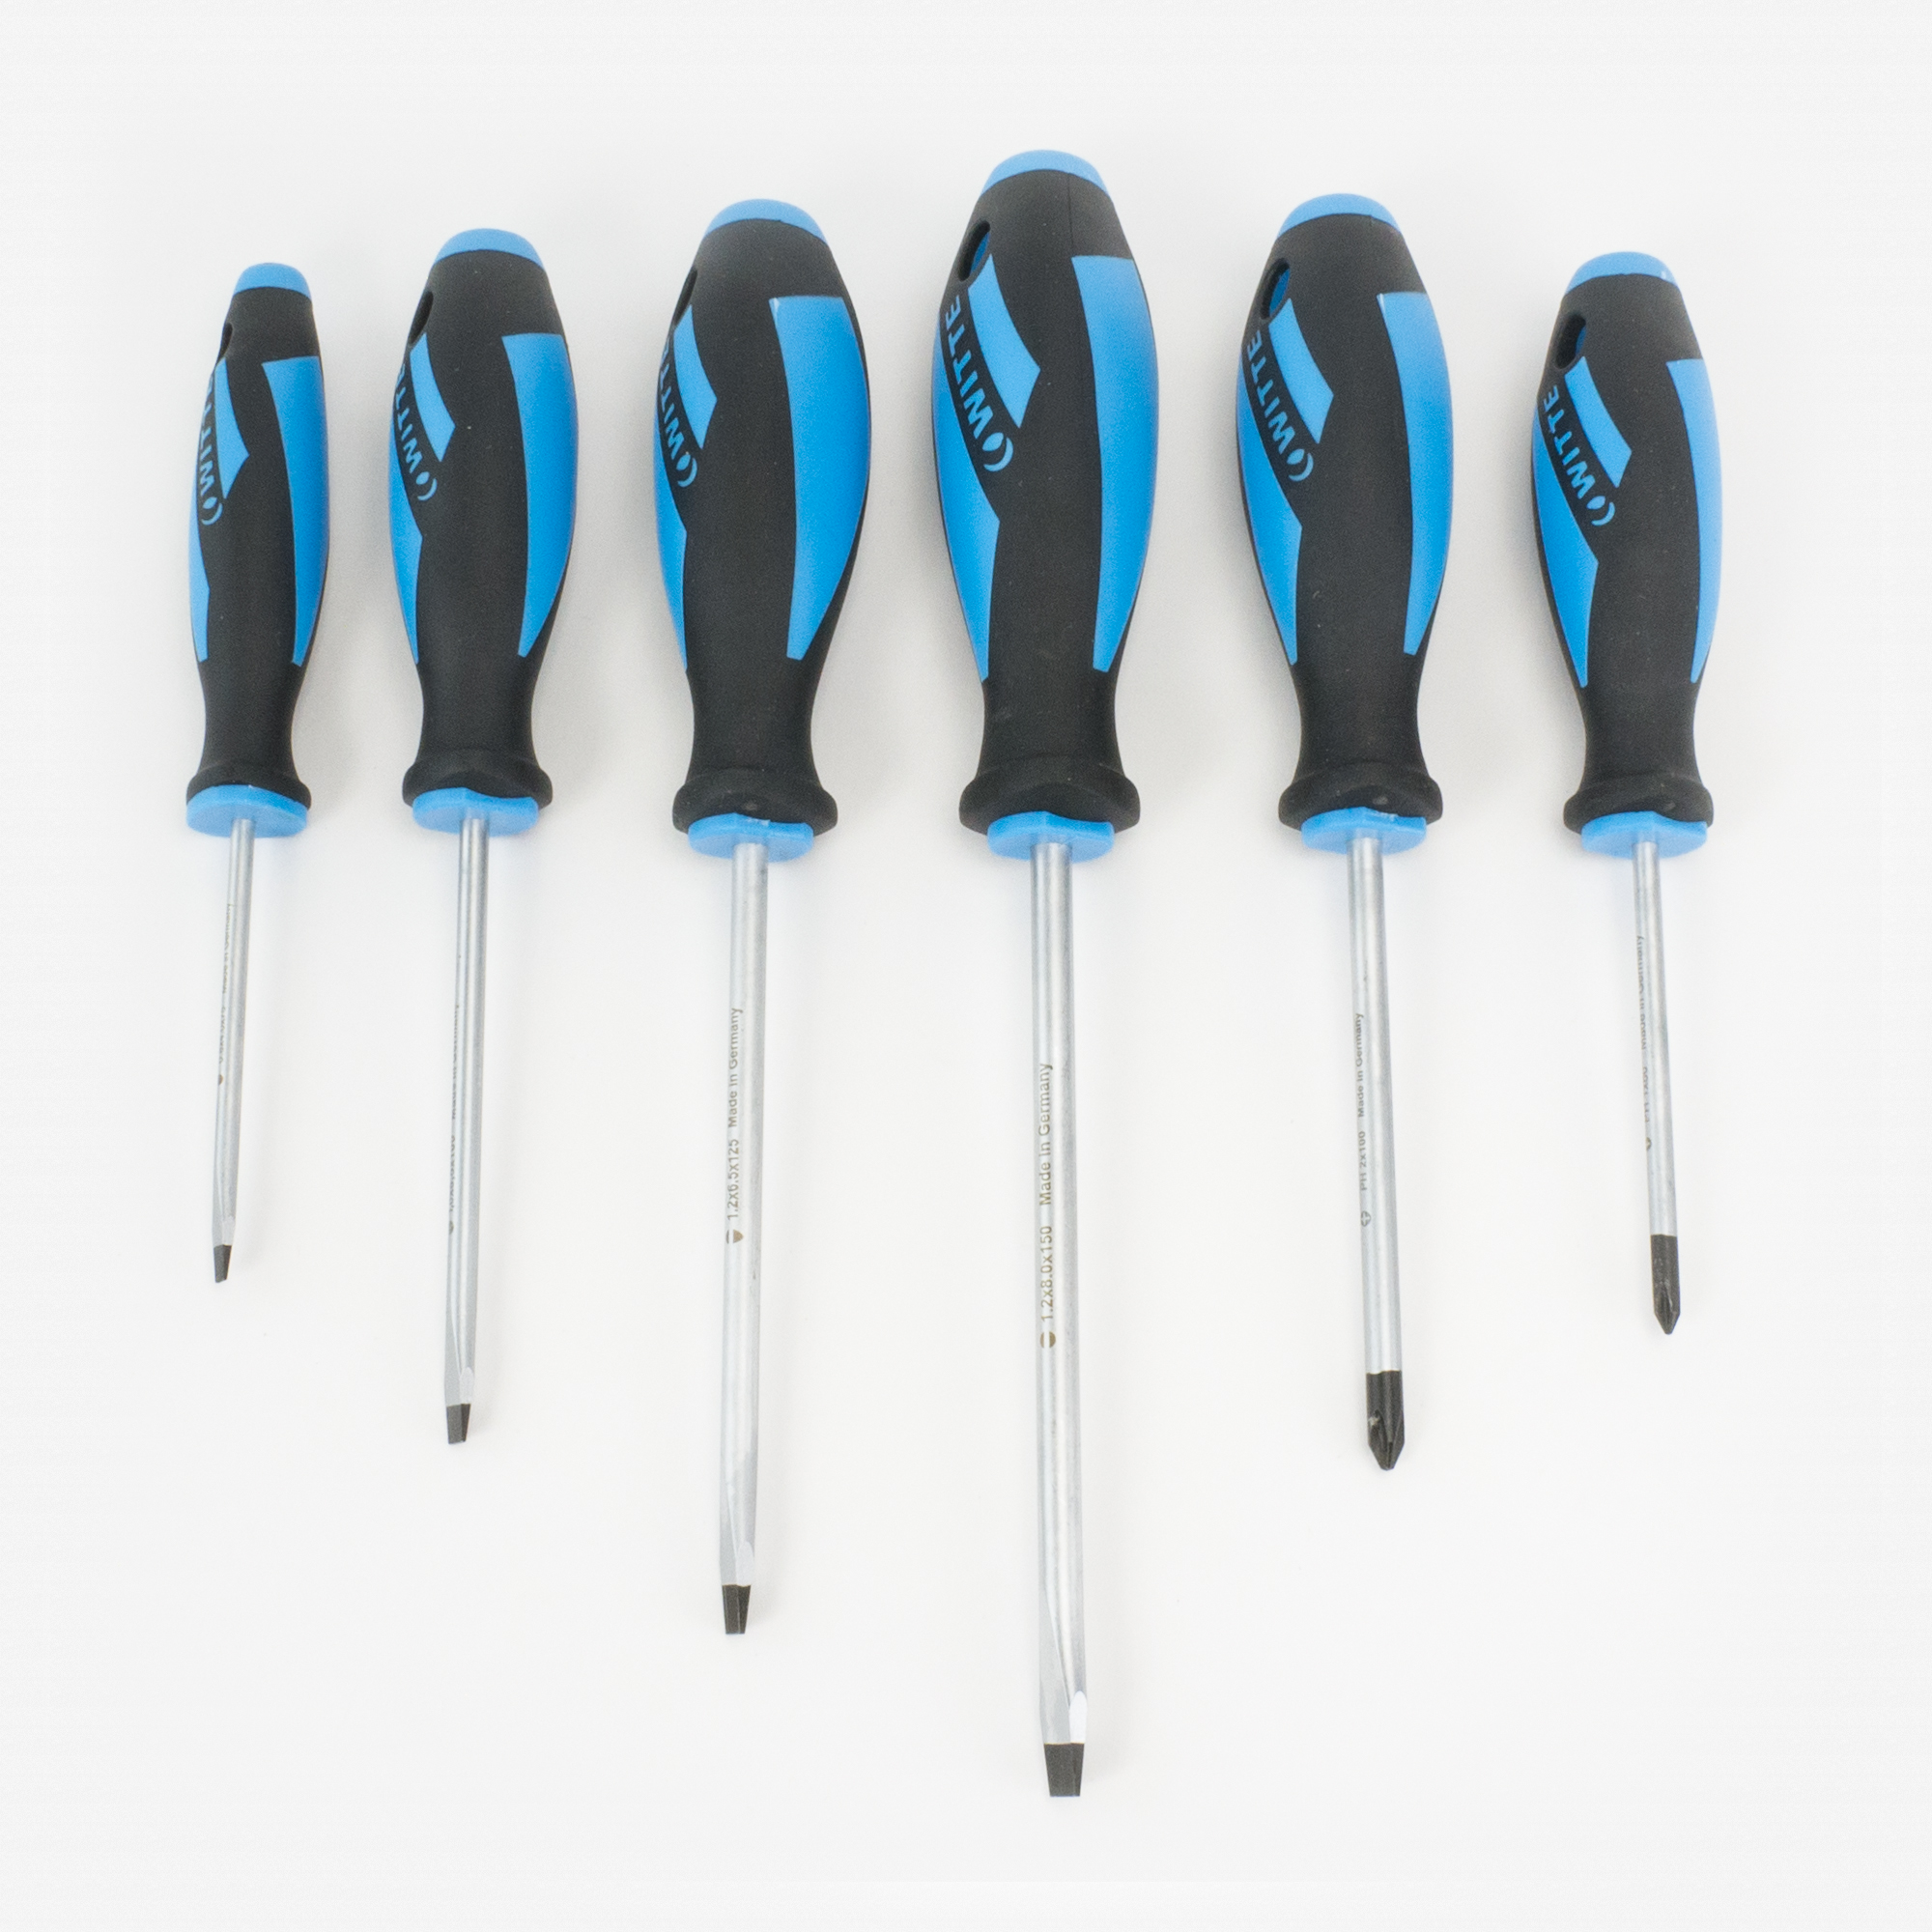 Witte 653864 6 Piece Maxxpro Slotted and Phillips Screwdriver Set - KC Tool